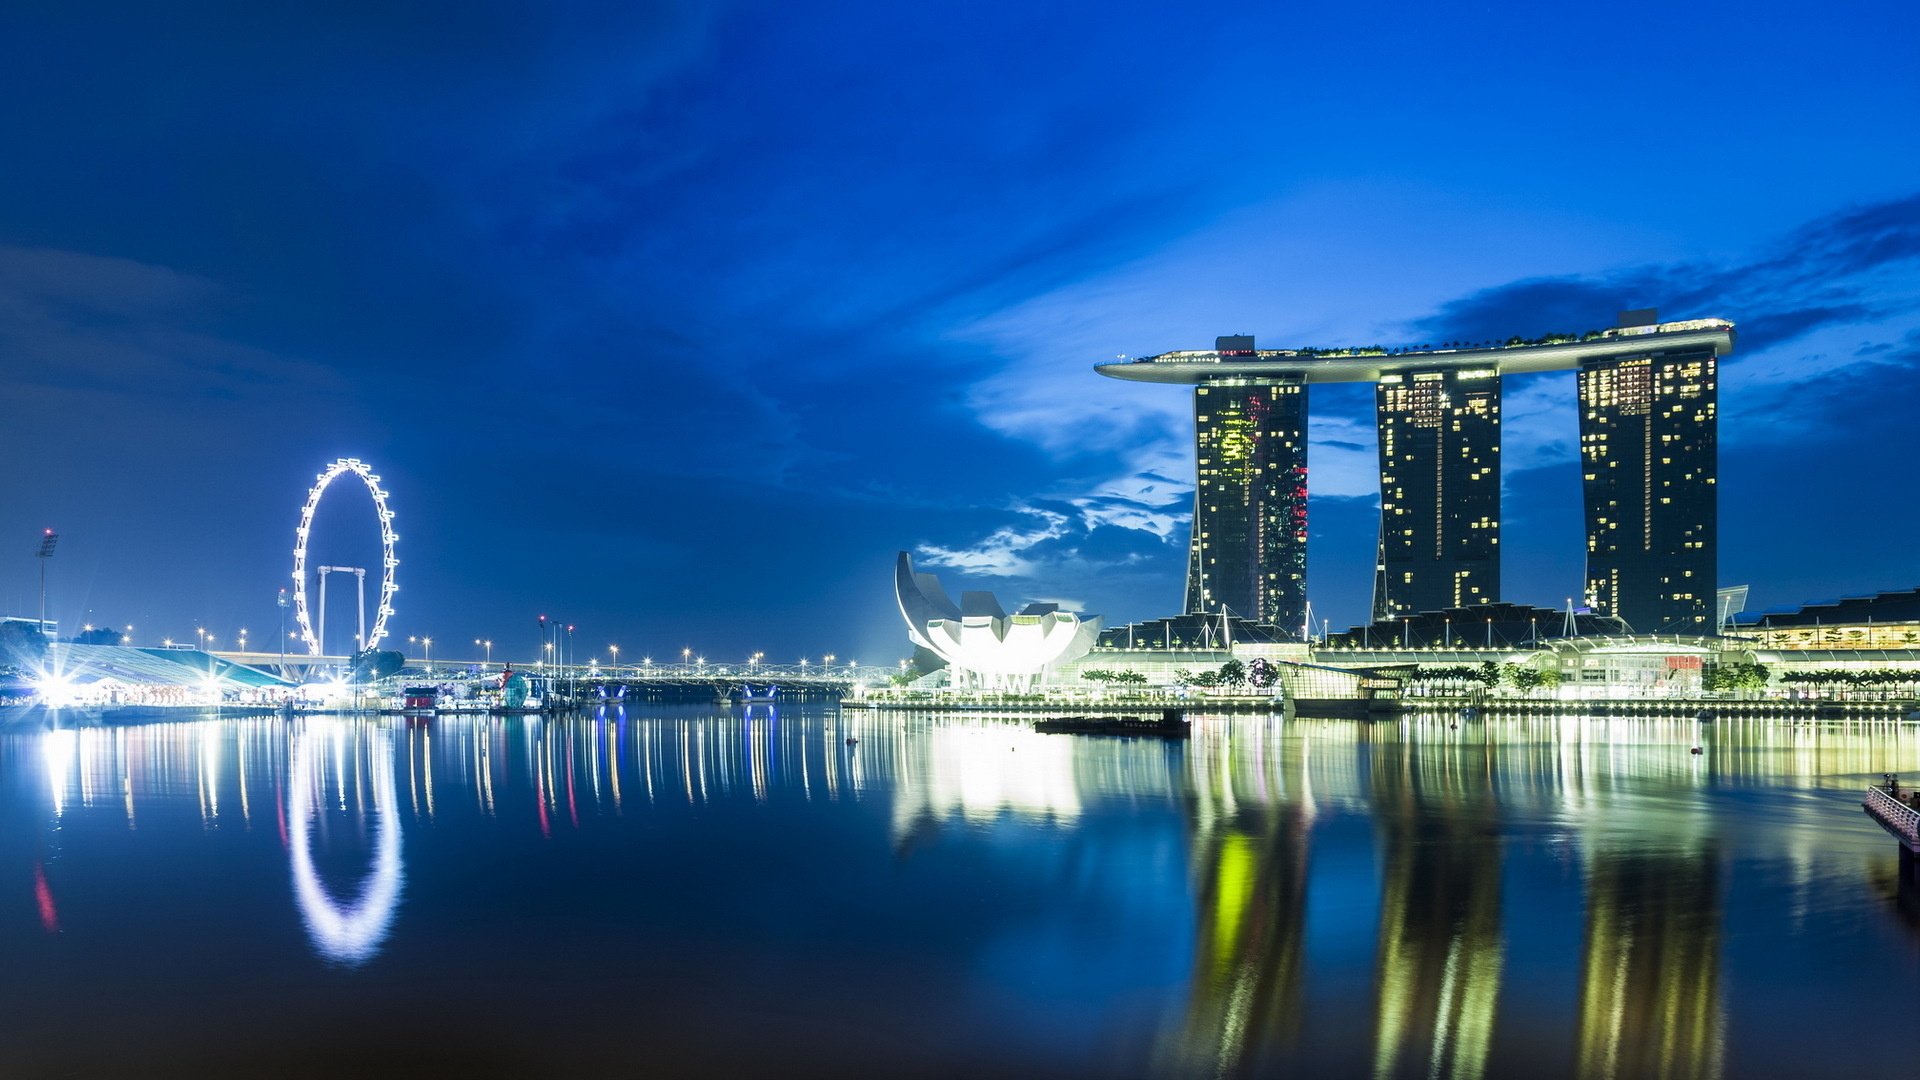 Marina Bay Sands Full Hd Wallpaper And Background Image